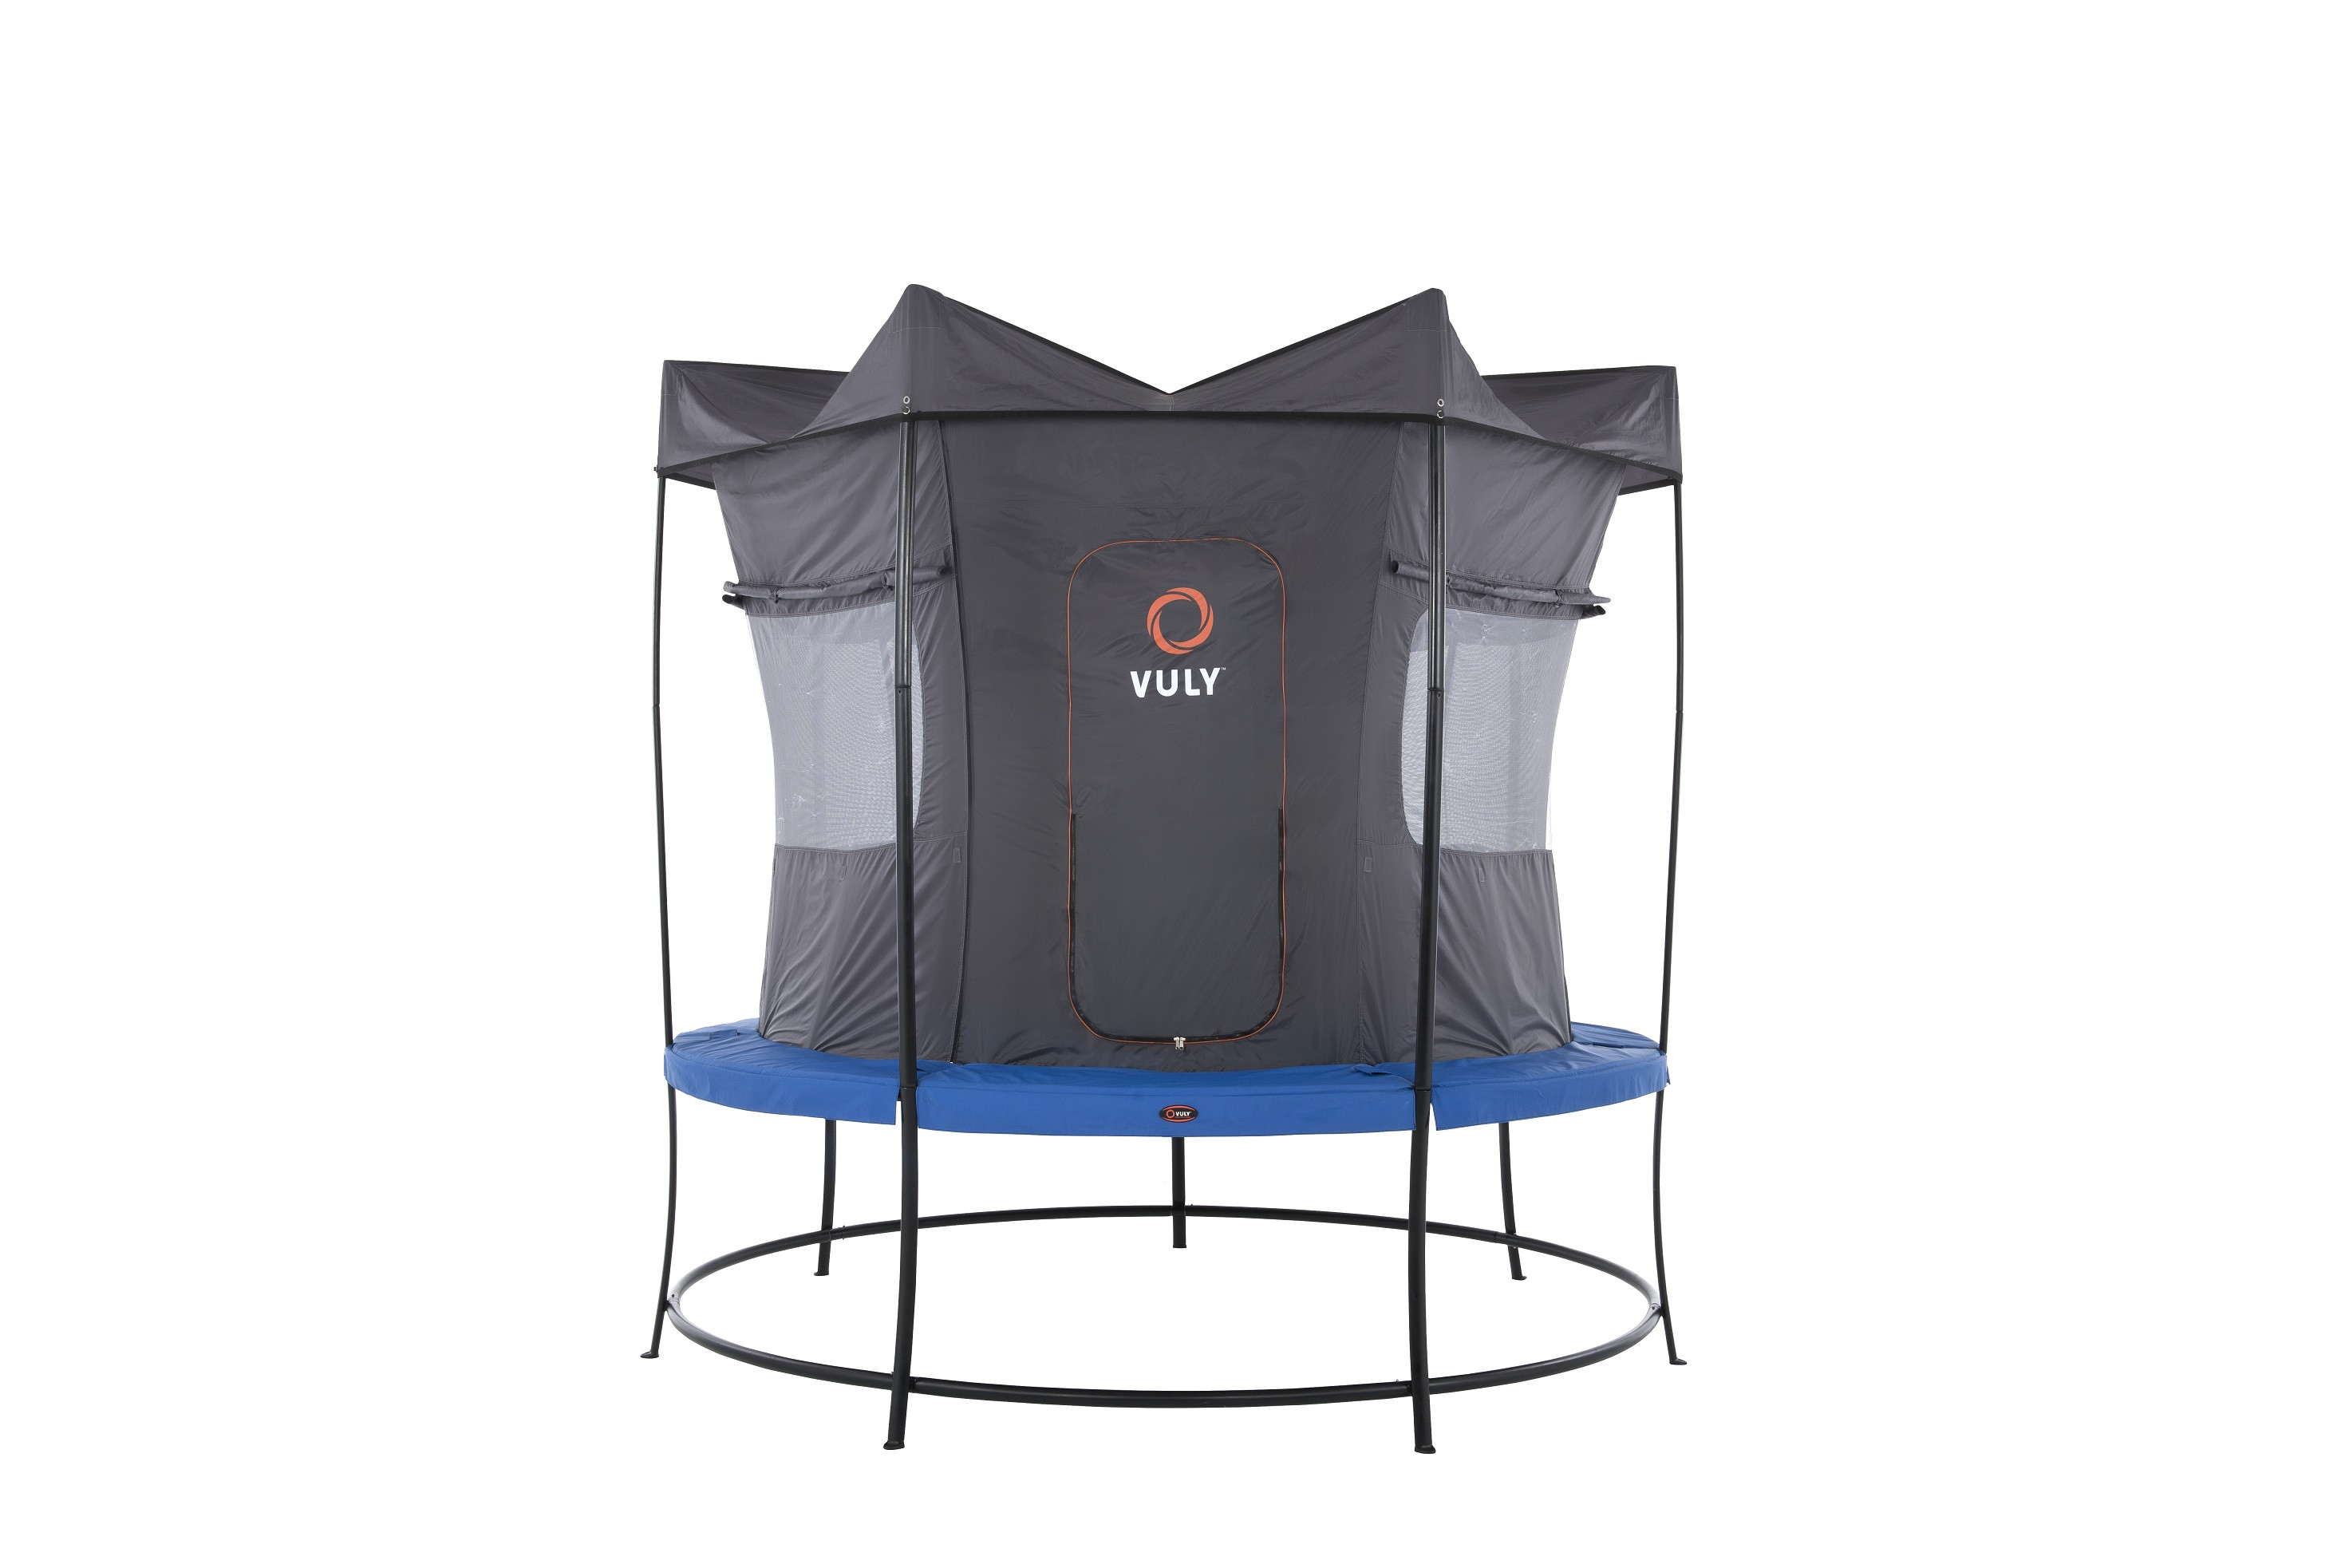 Vuly2-10ft-Trampoline-with-Net-&-Tent